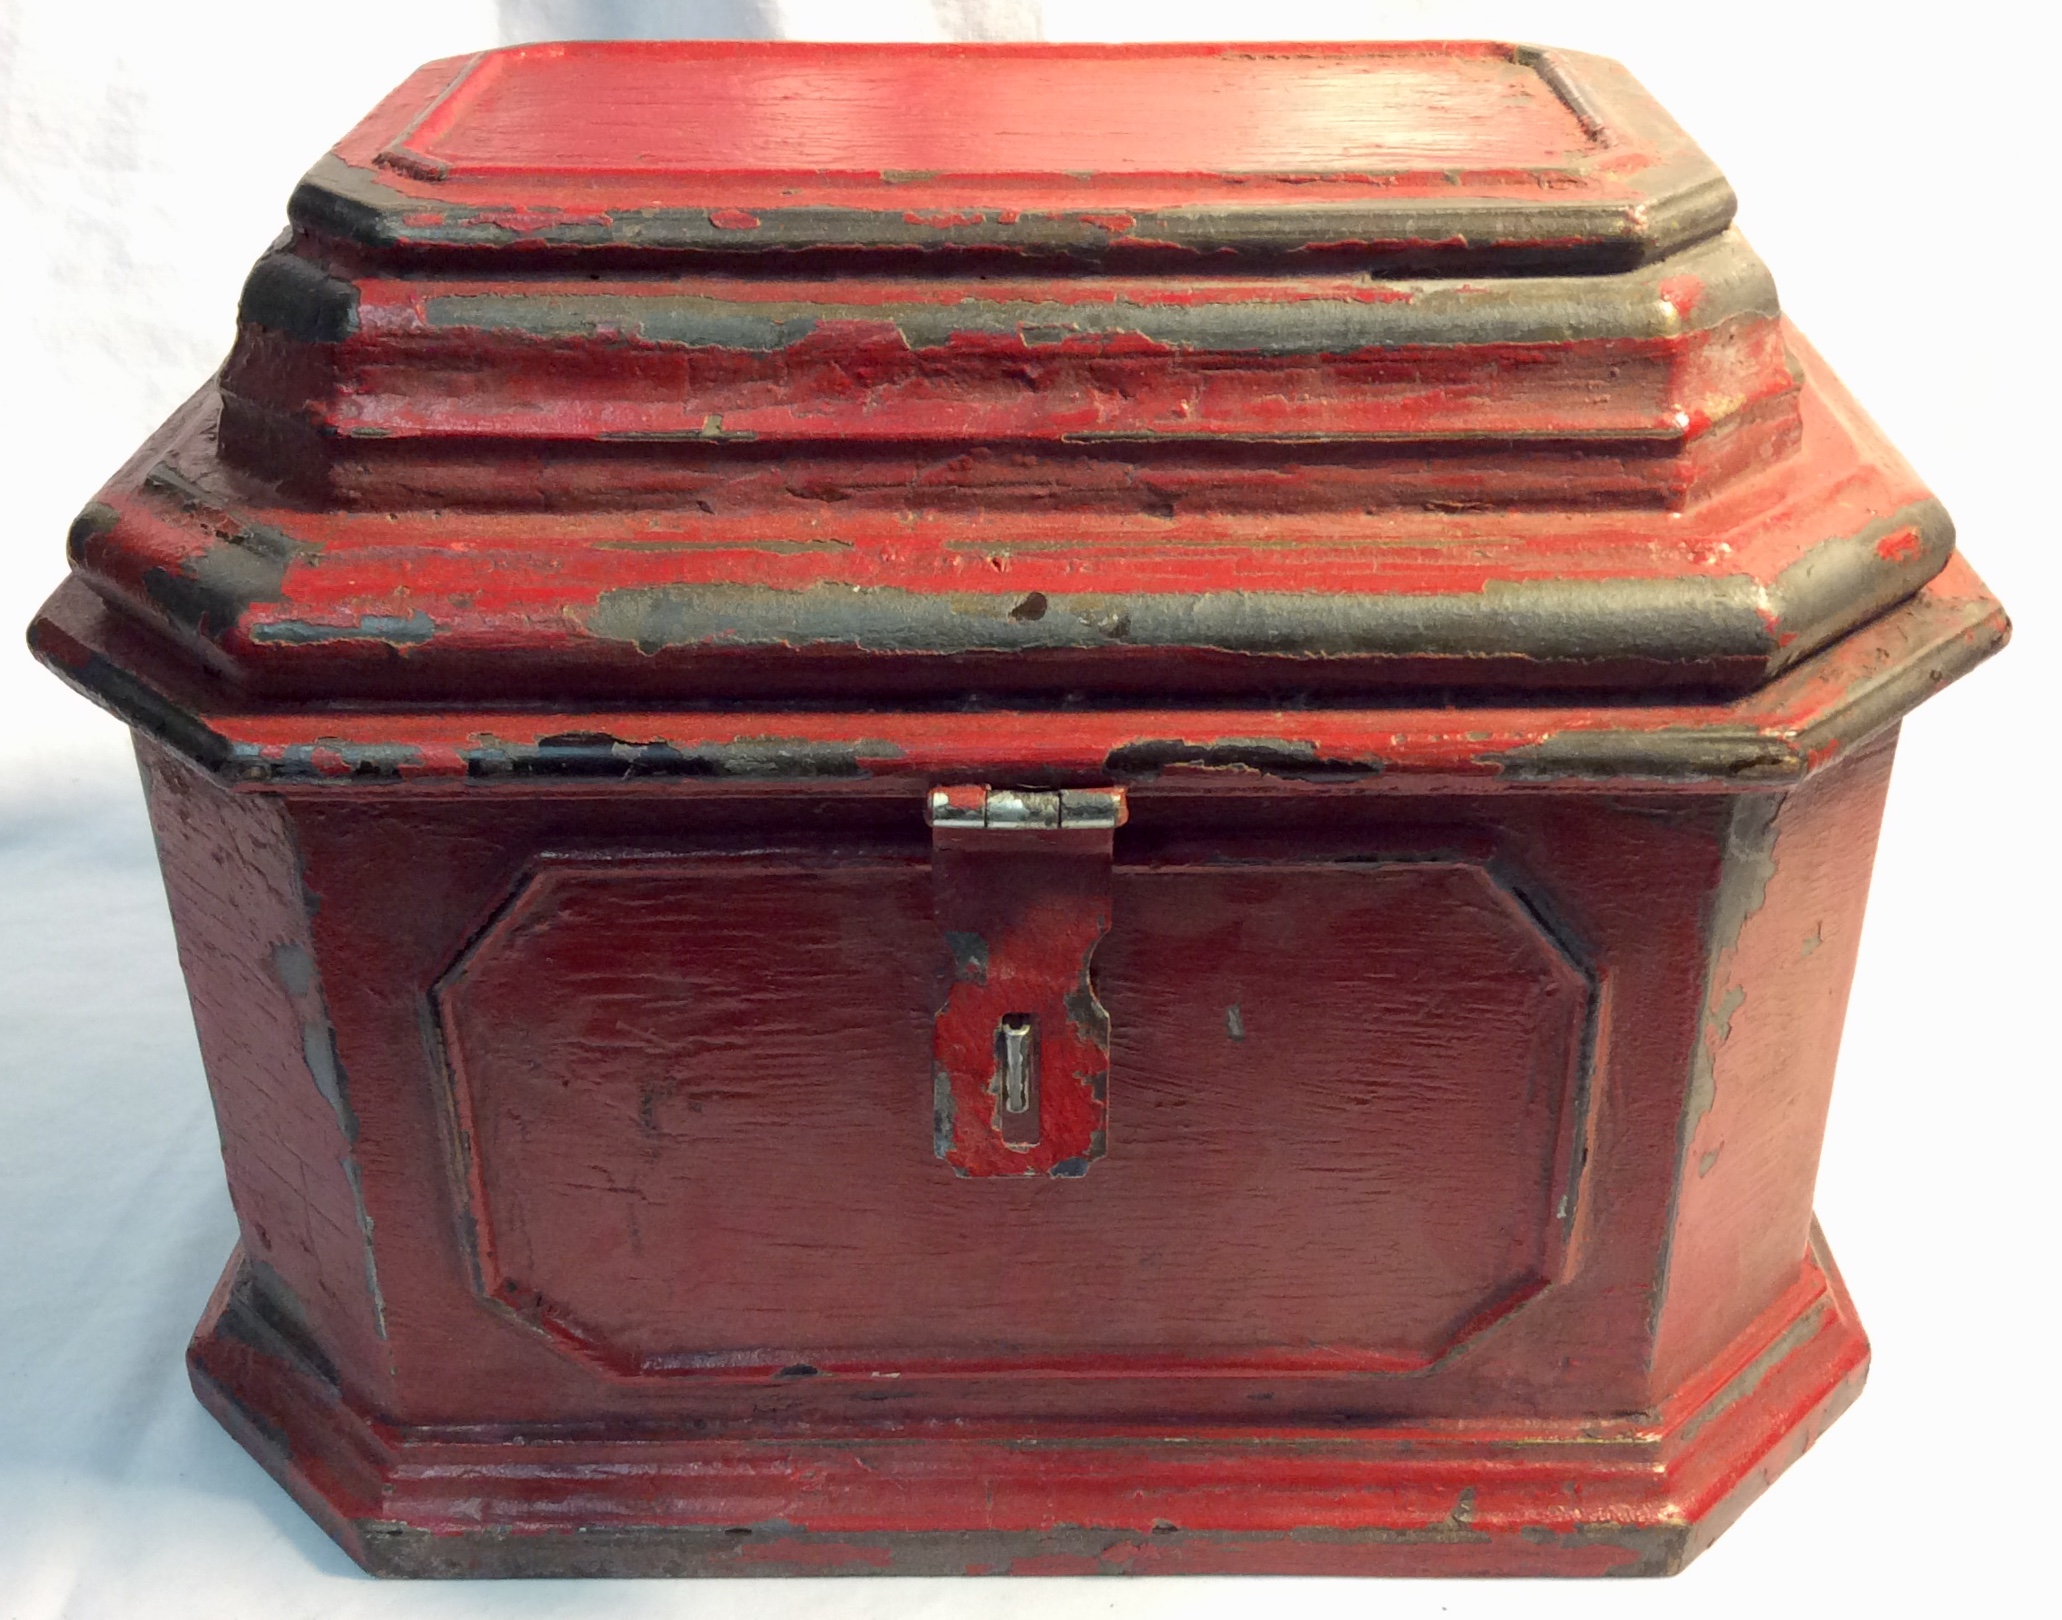 Aged red wooden box/treasure box